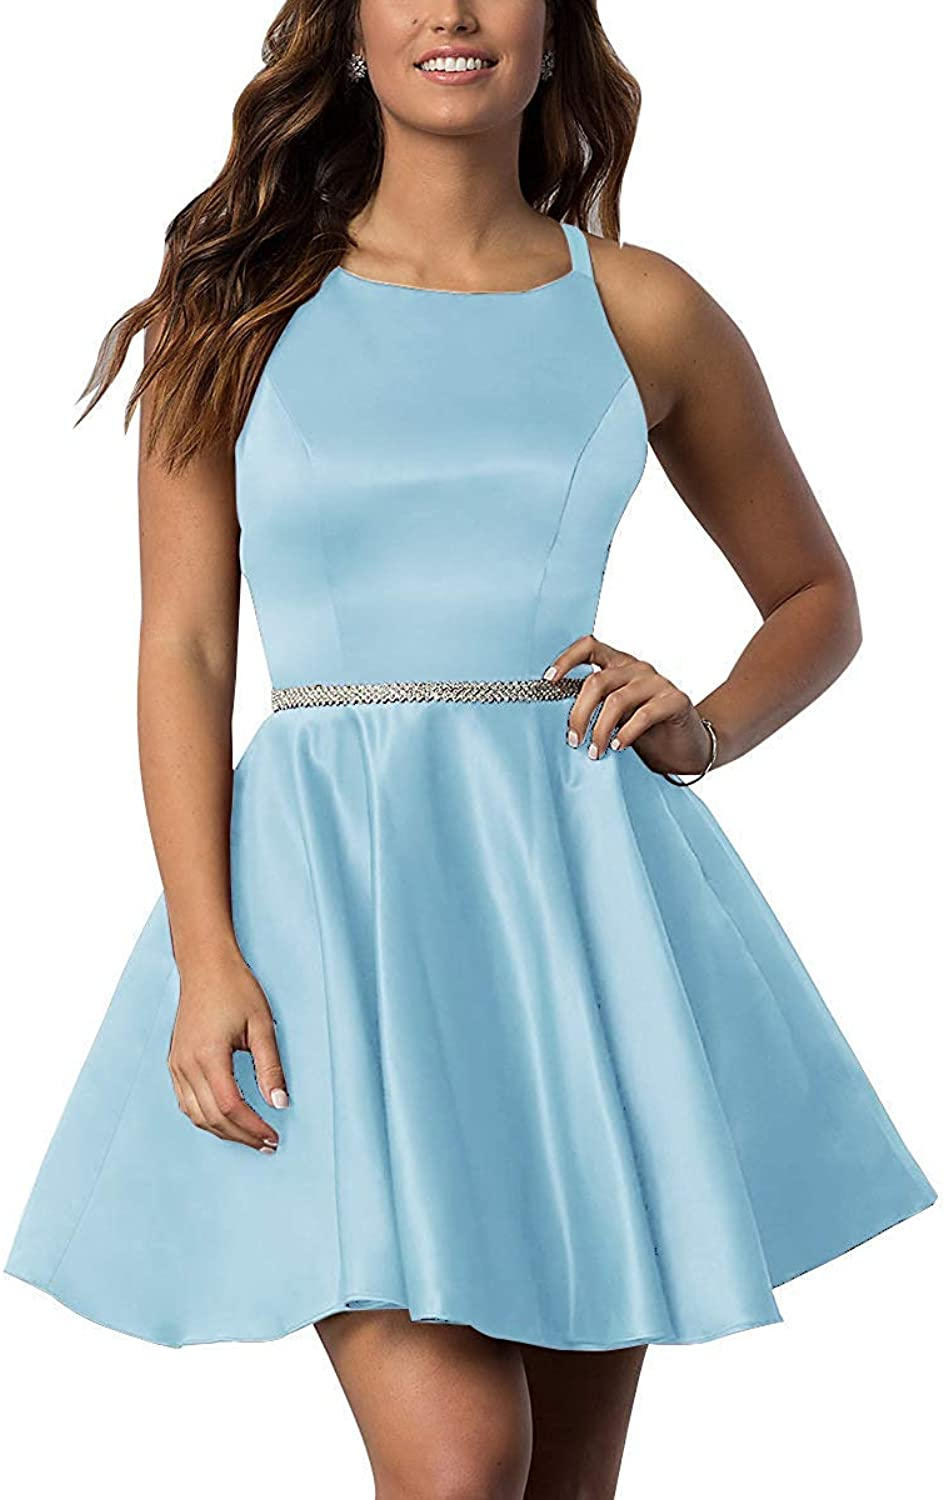 XKYU Women's ALine Short Homecoming Dresses Satin Beading Backless Sexy Simple Prom Dresses for Girls